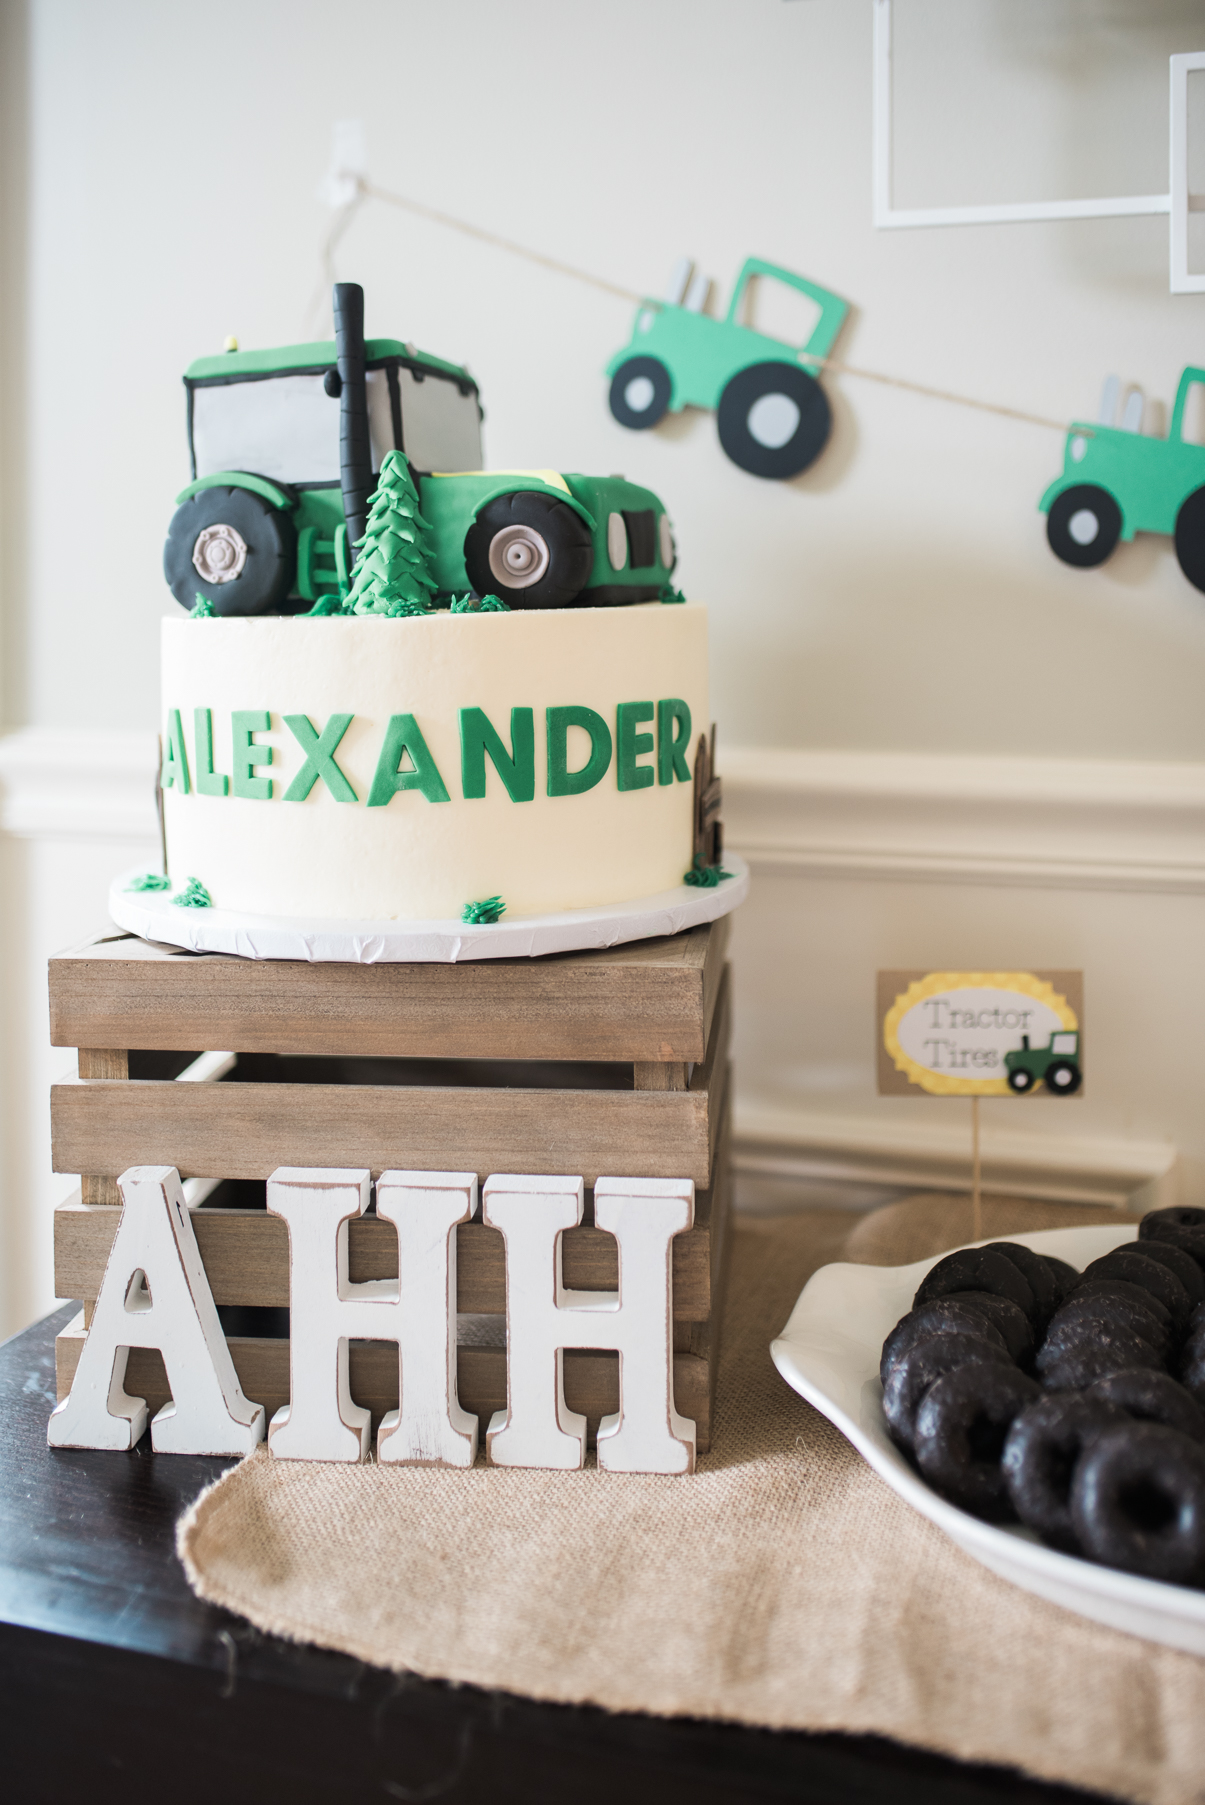 Baltimore-Maryland-harford county-photographer-family-lifestyle-tractor party-photos-by-breanna-kuhlmann-2.jpg